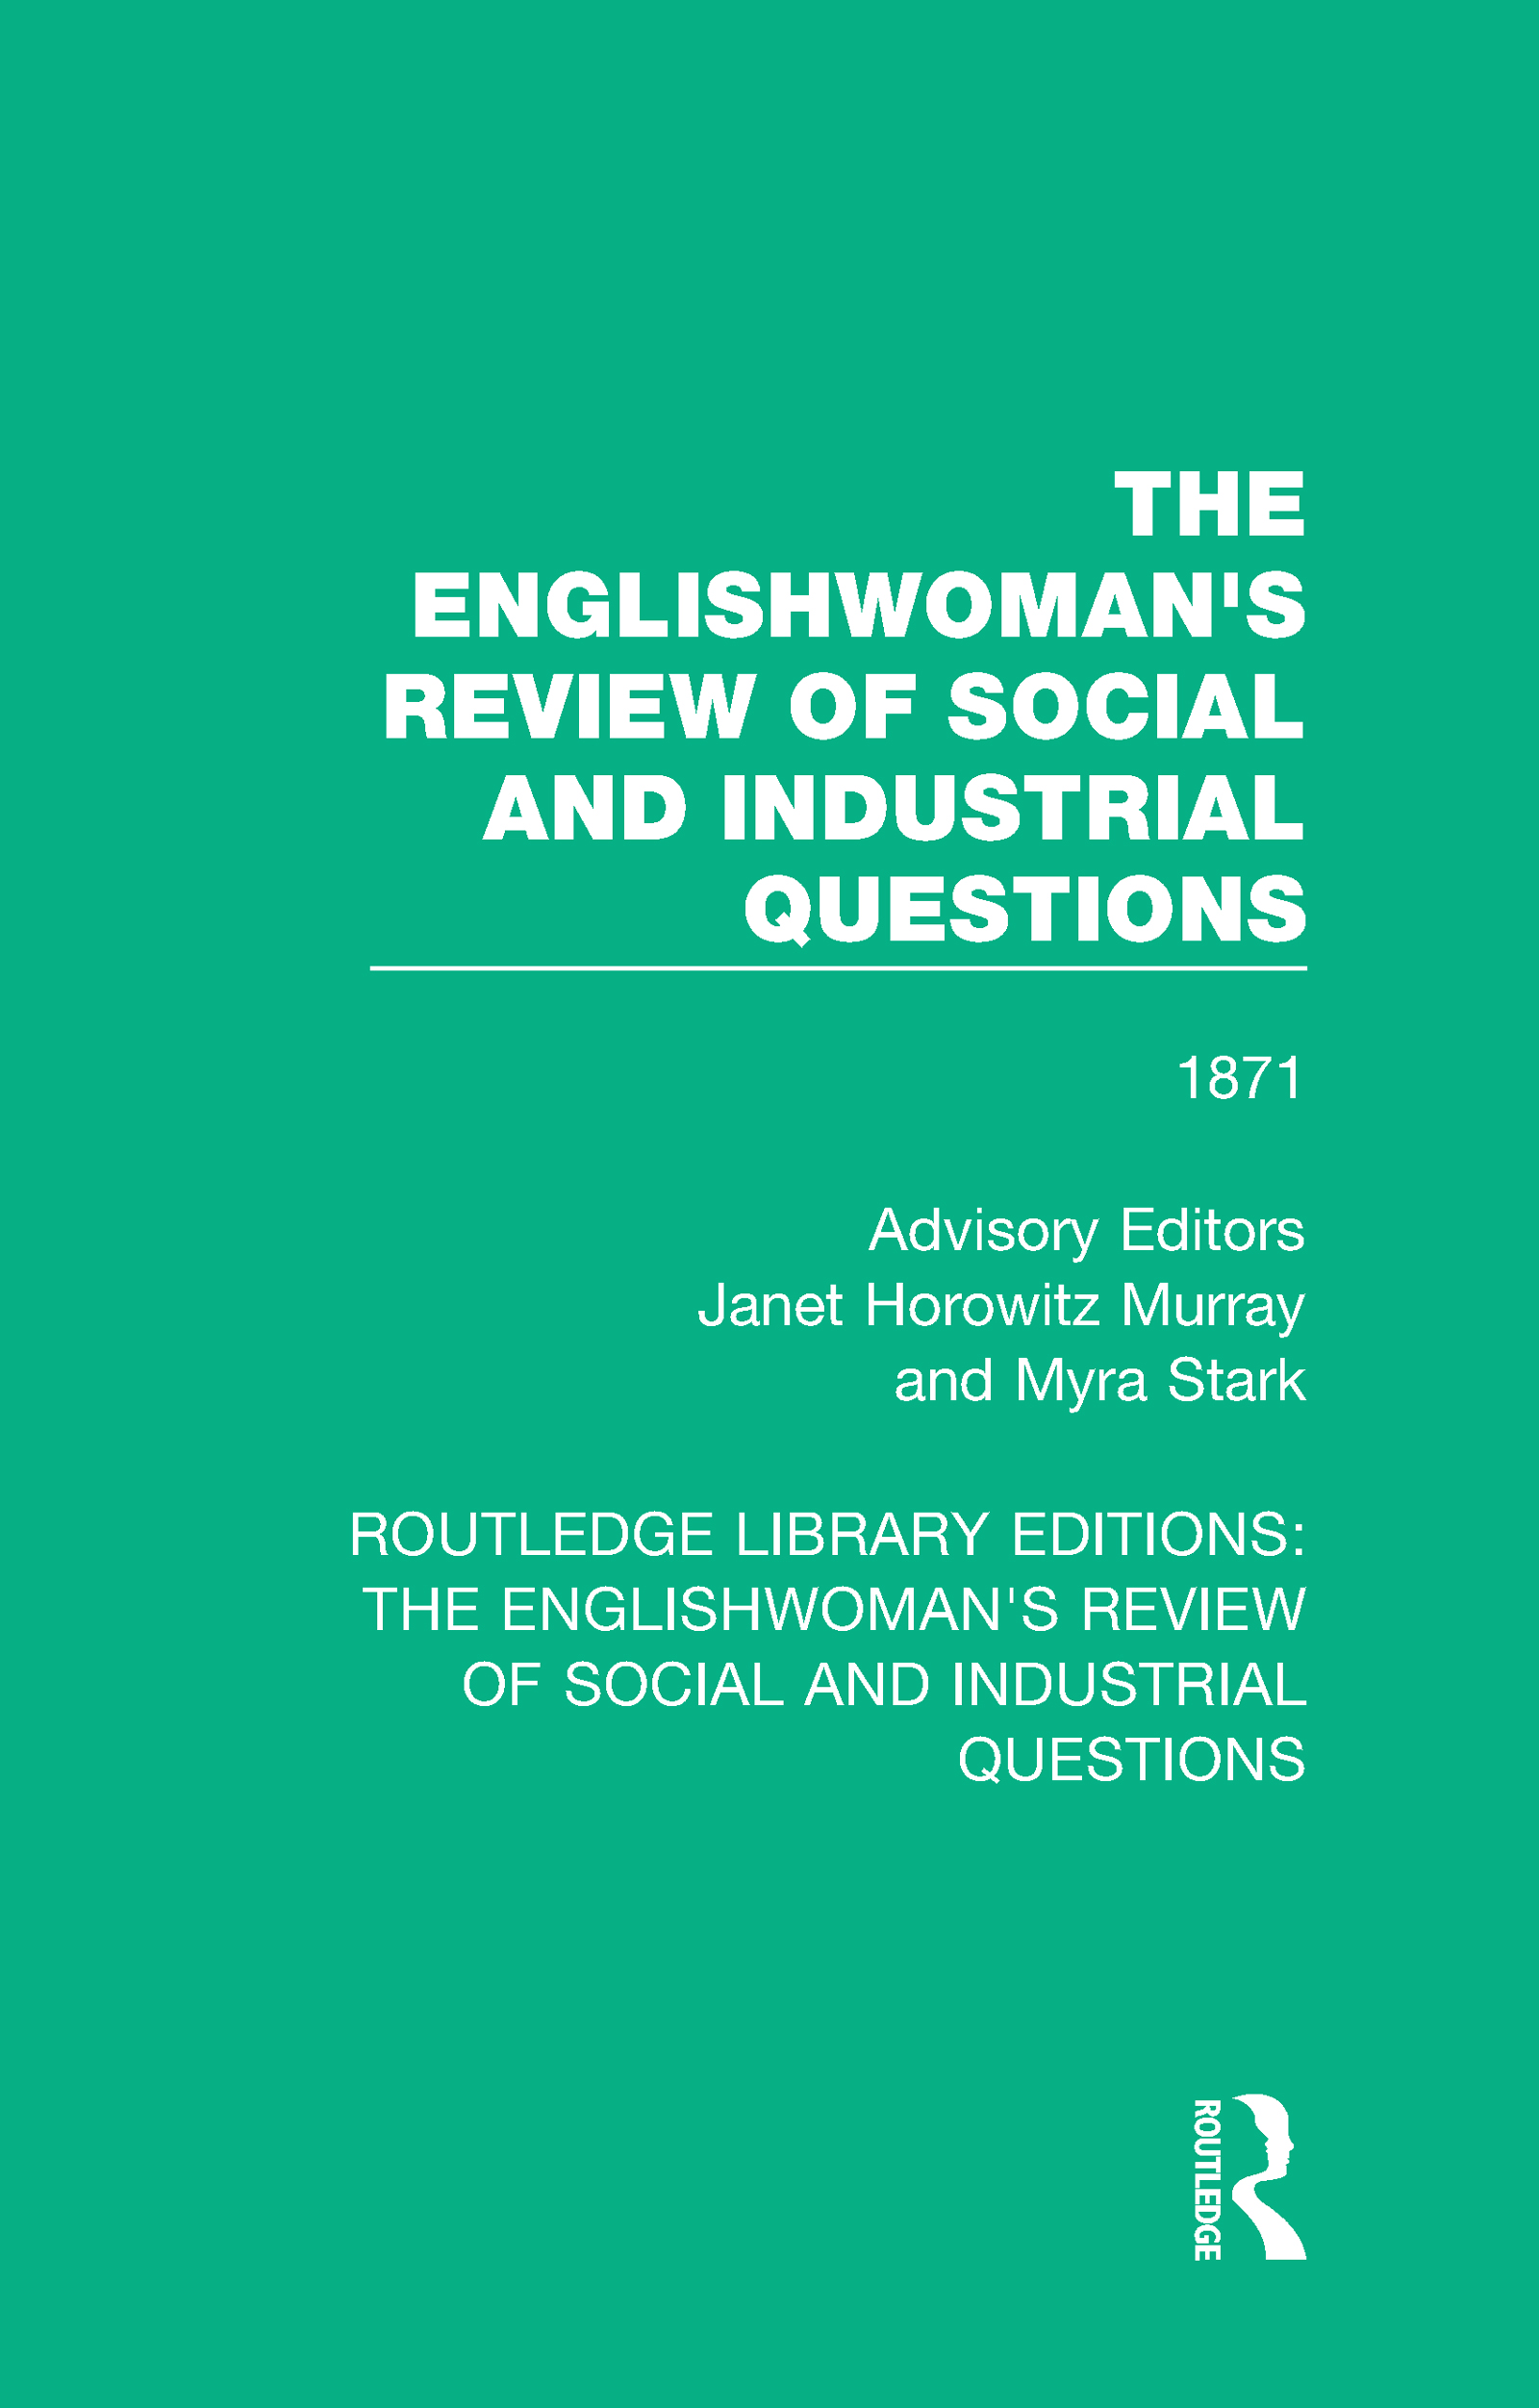 The Englishwoman's Review of Social and Industrial Questions: 1871 book cover